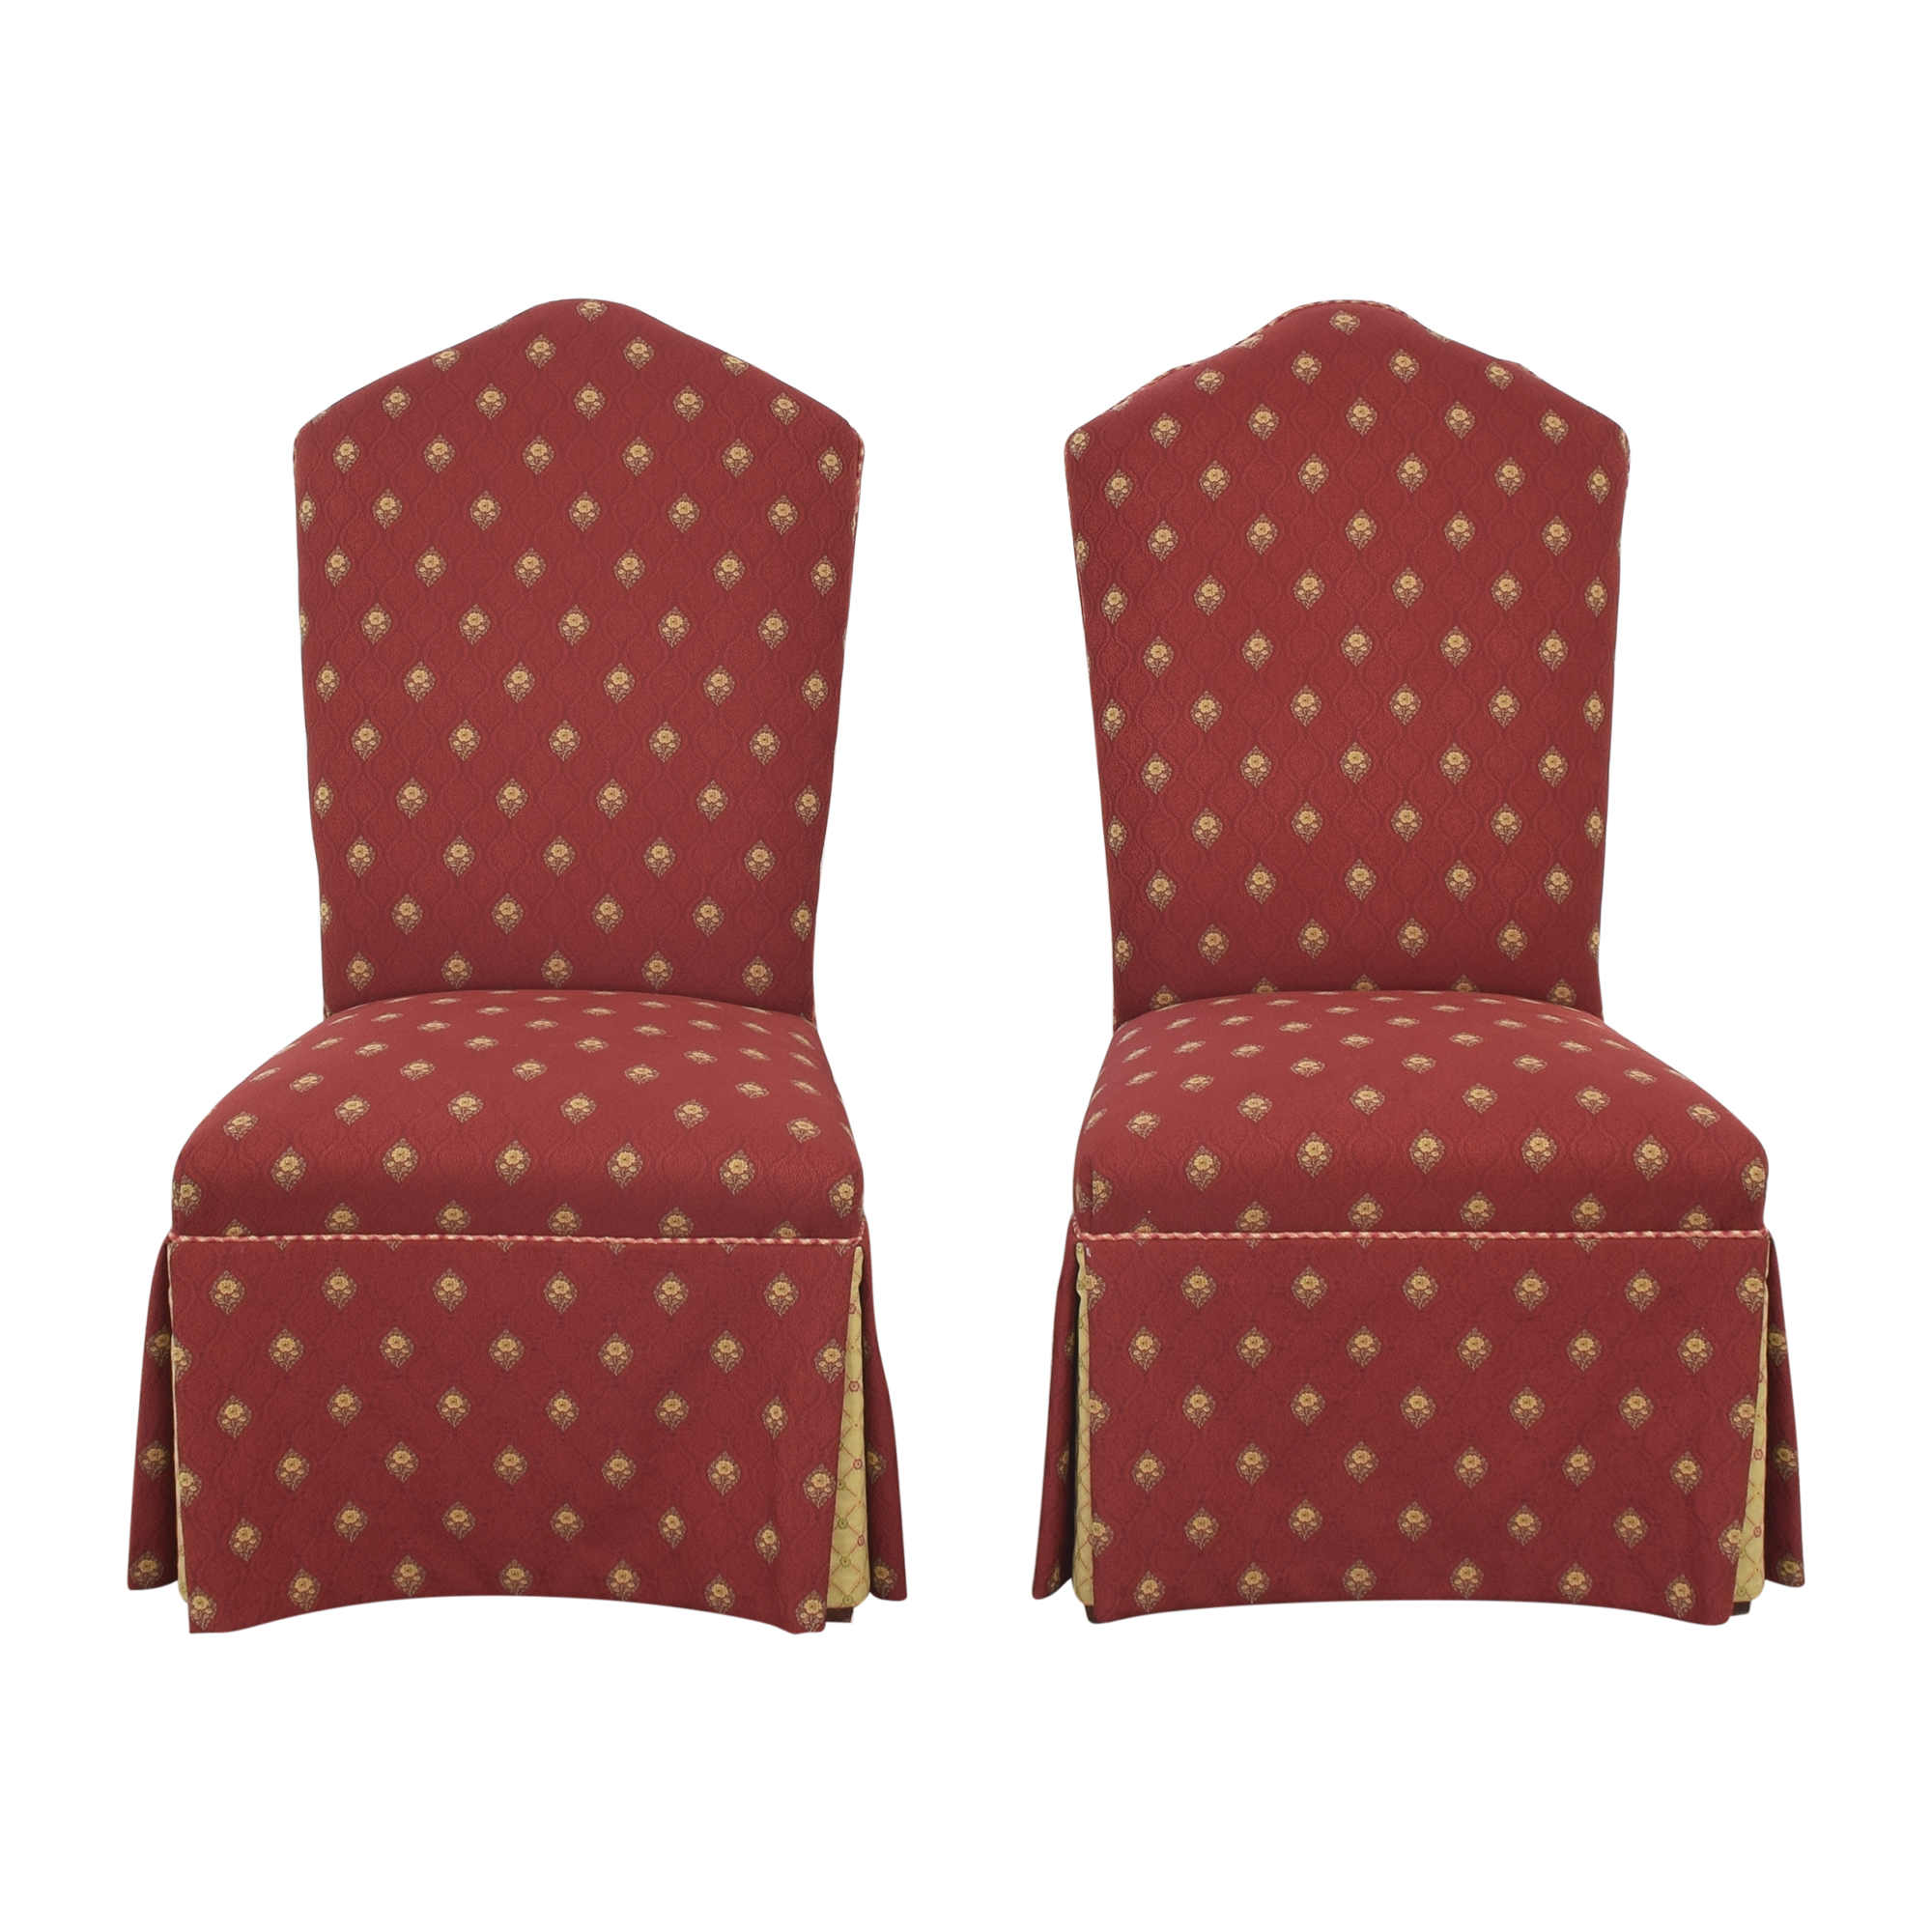 Cox Manufacturing Cox Skirted Dining Chairs on sale